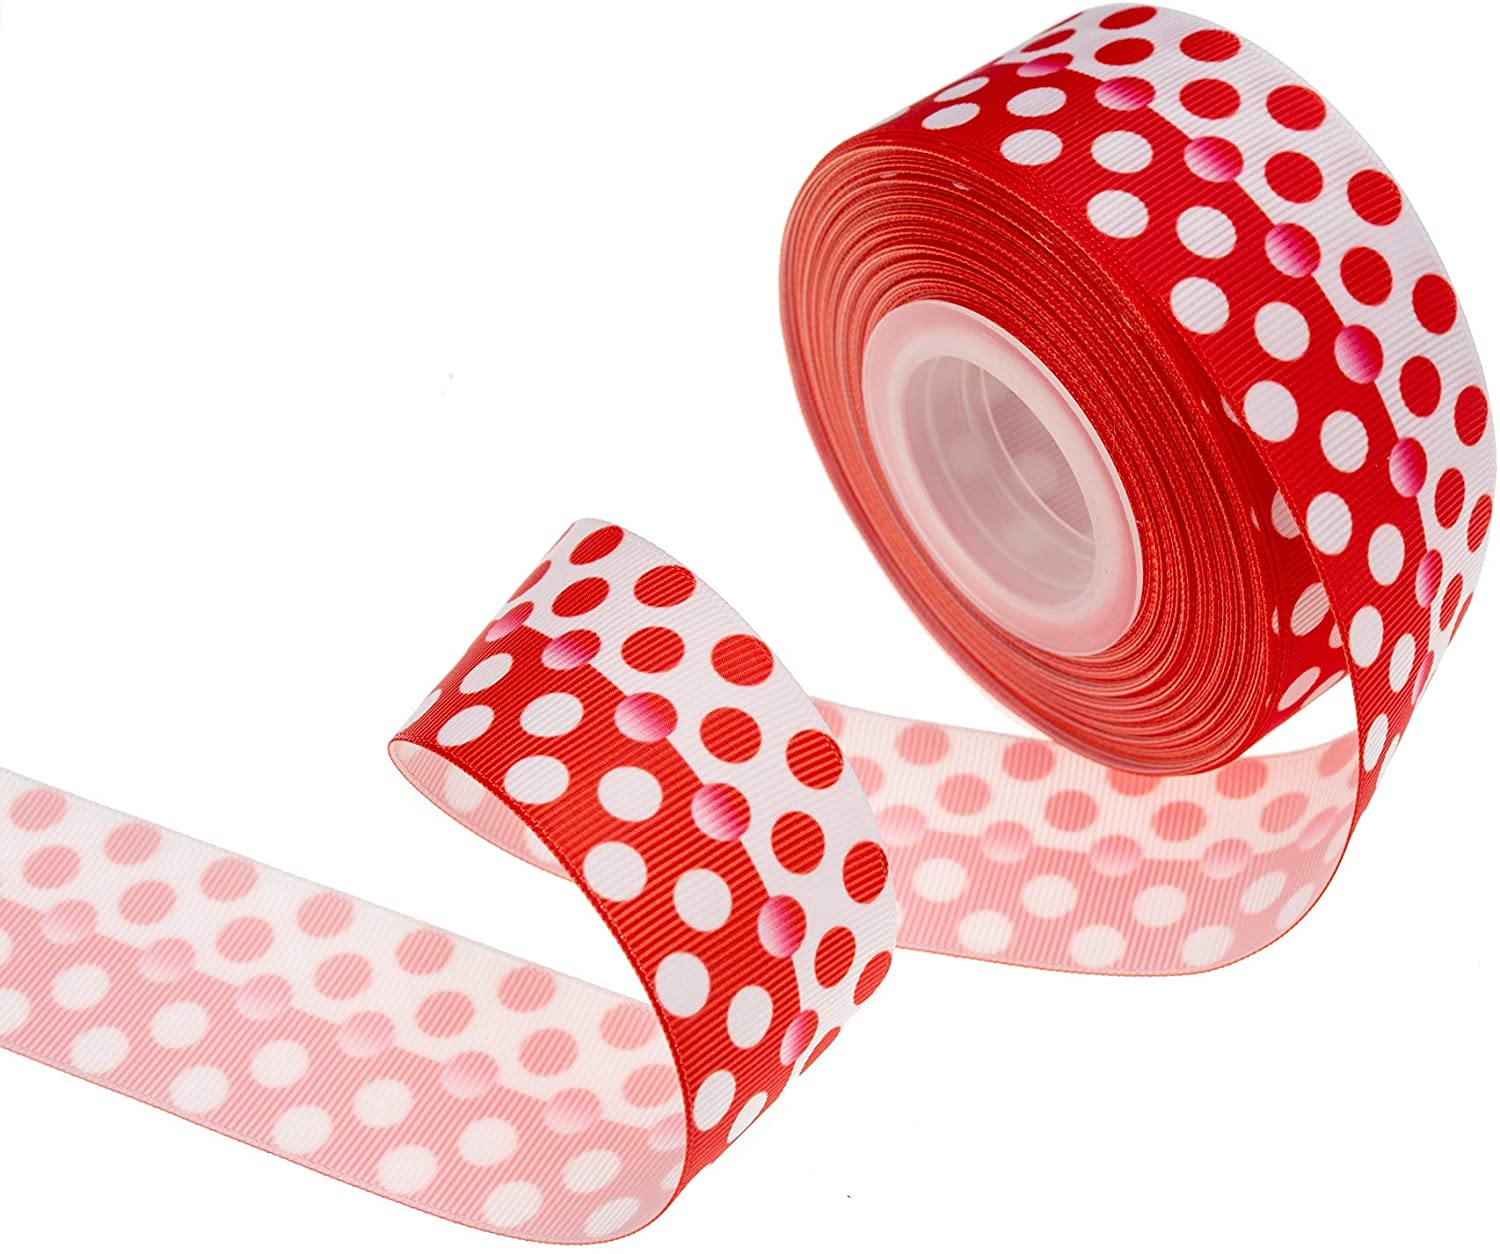 ATRBB 20 Yards 1-1/2 Inch Wide Classic Contrast Color Gradient Polka Dot Pattern Printed Grosgrain Ribbon for DIY Hair Accessories Gift Wrapping Bow Headbands and Crafting (Red & White)